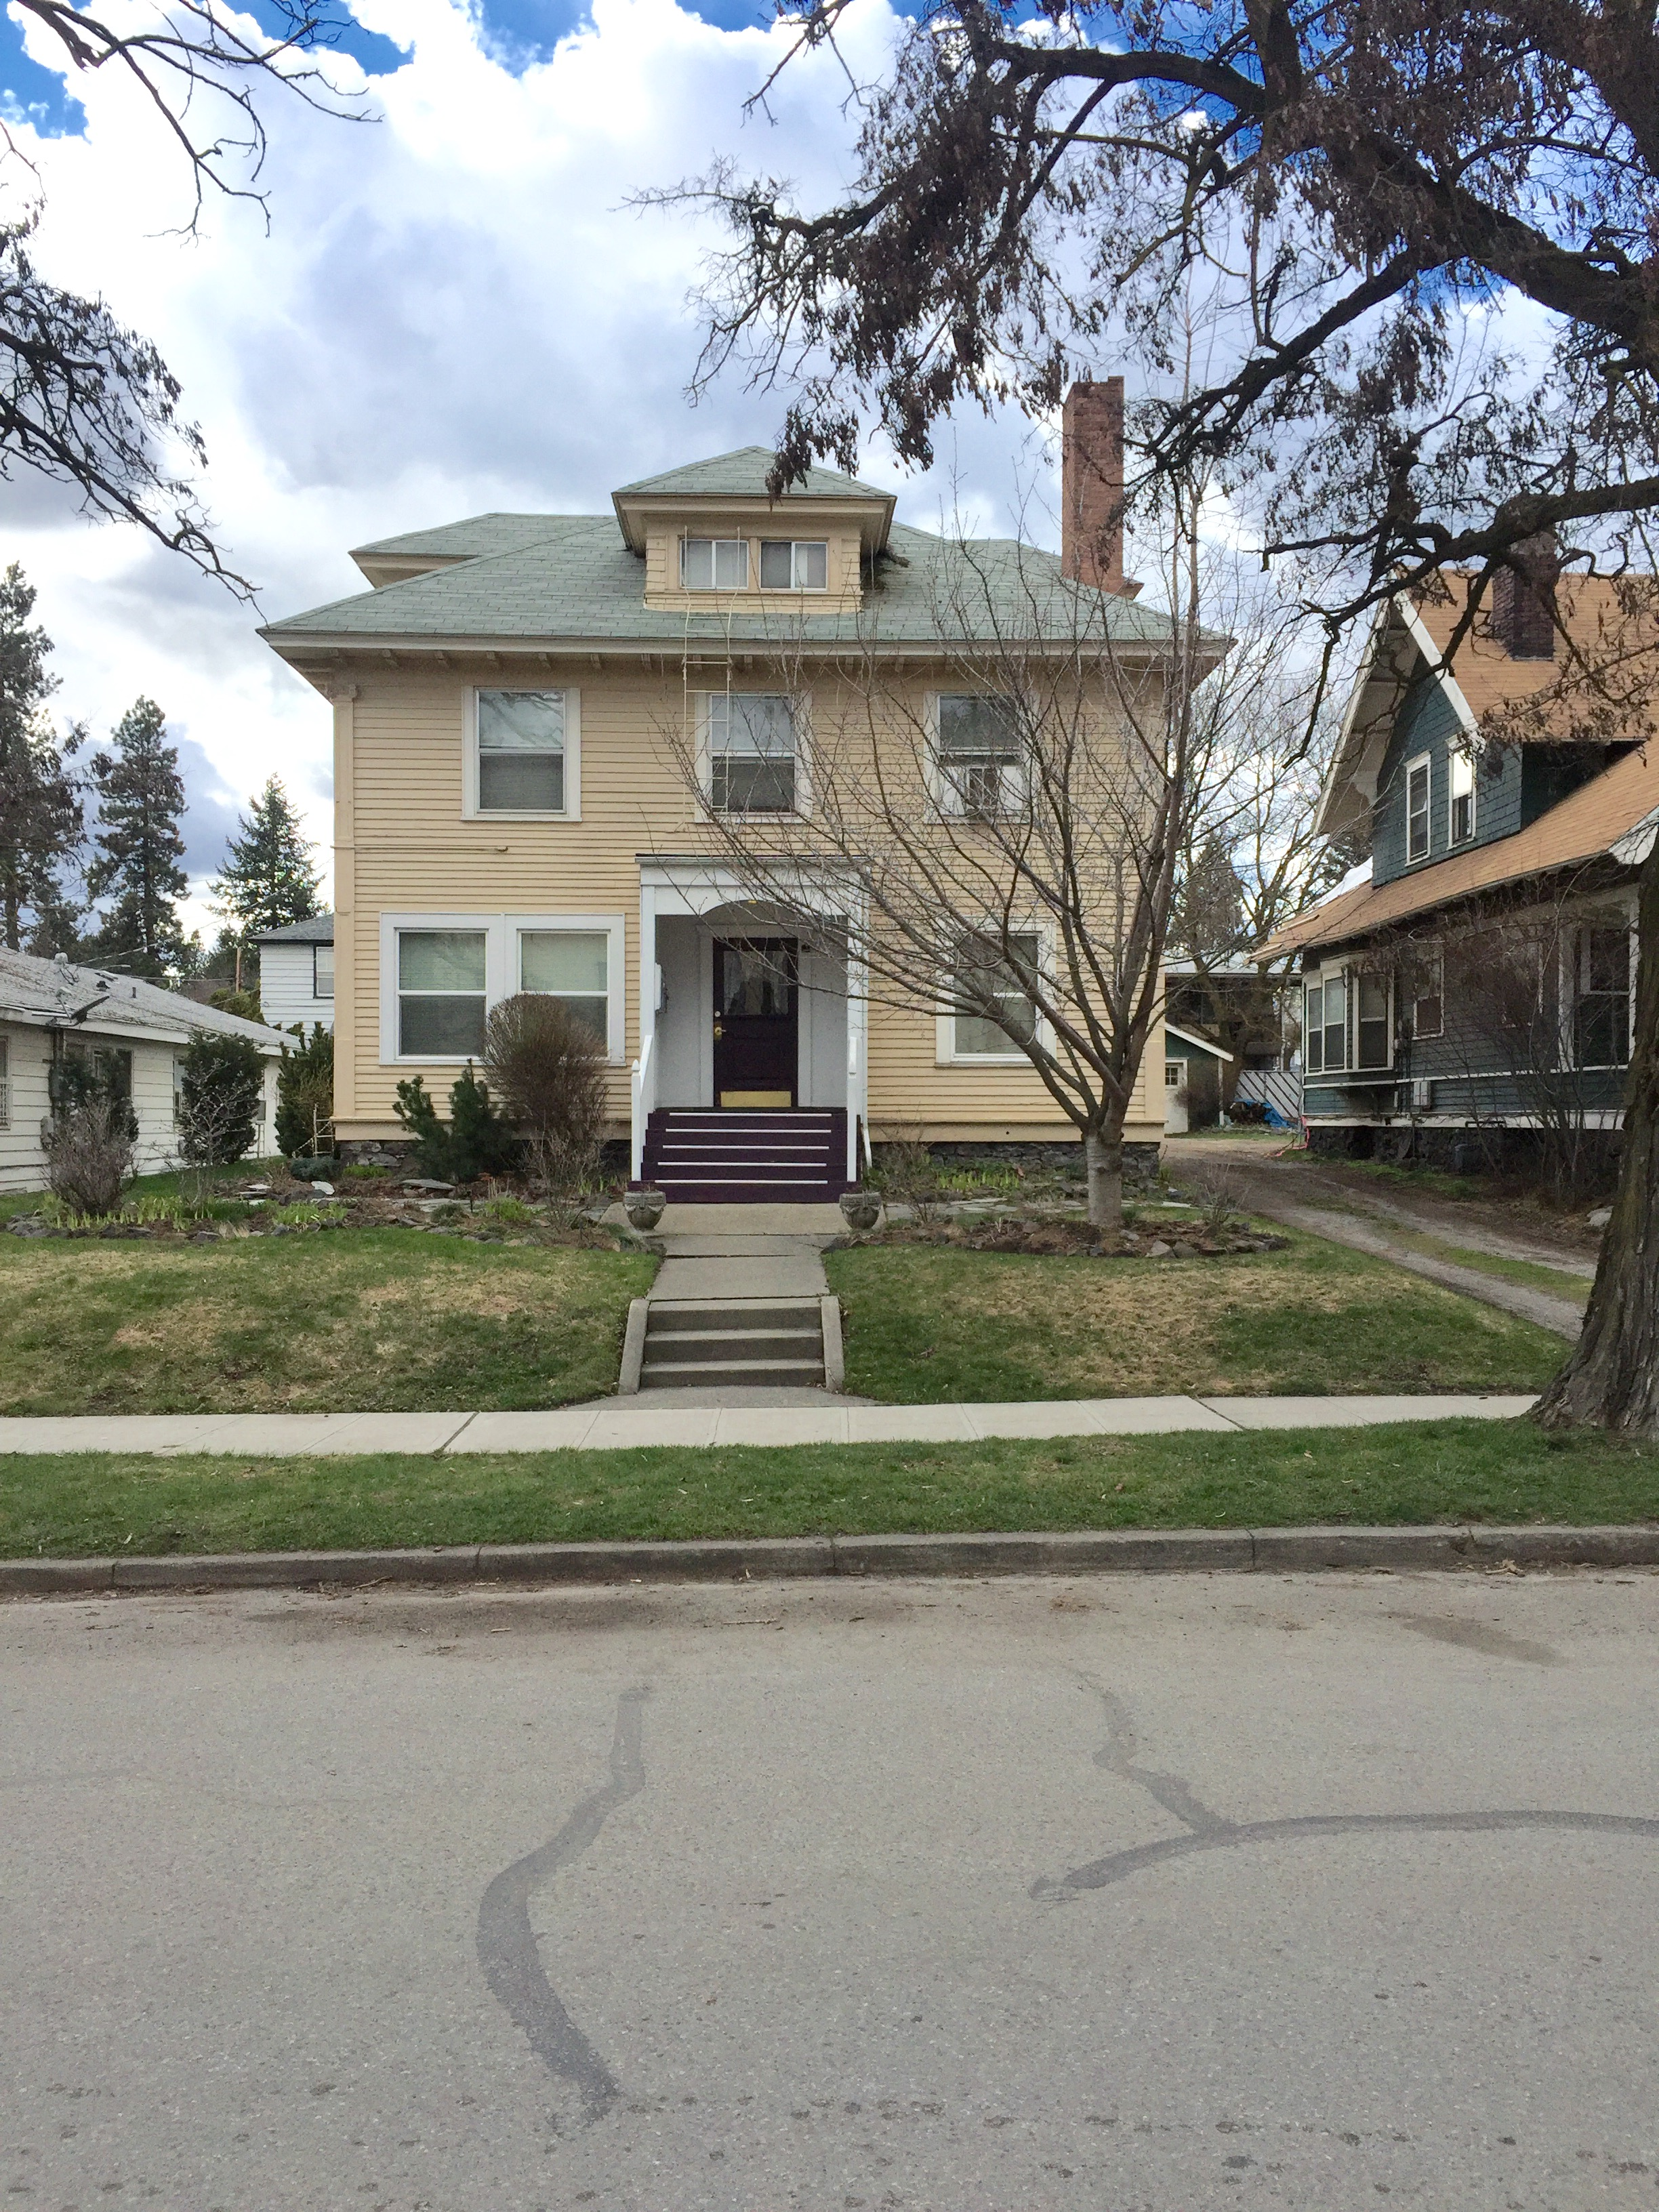 5 Unit Apartment in Browne's Addition                   Sale: $265,000